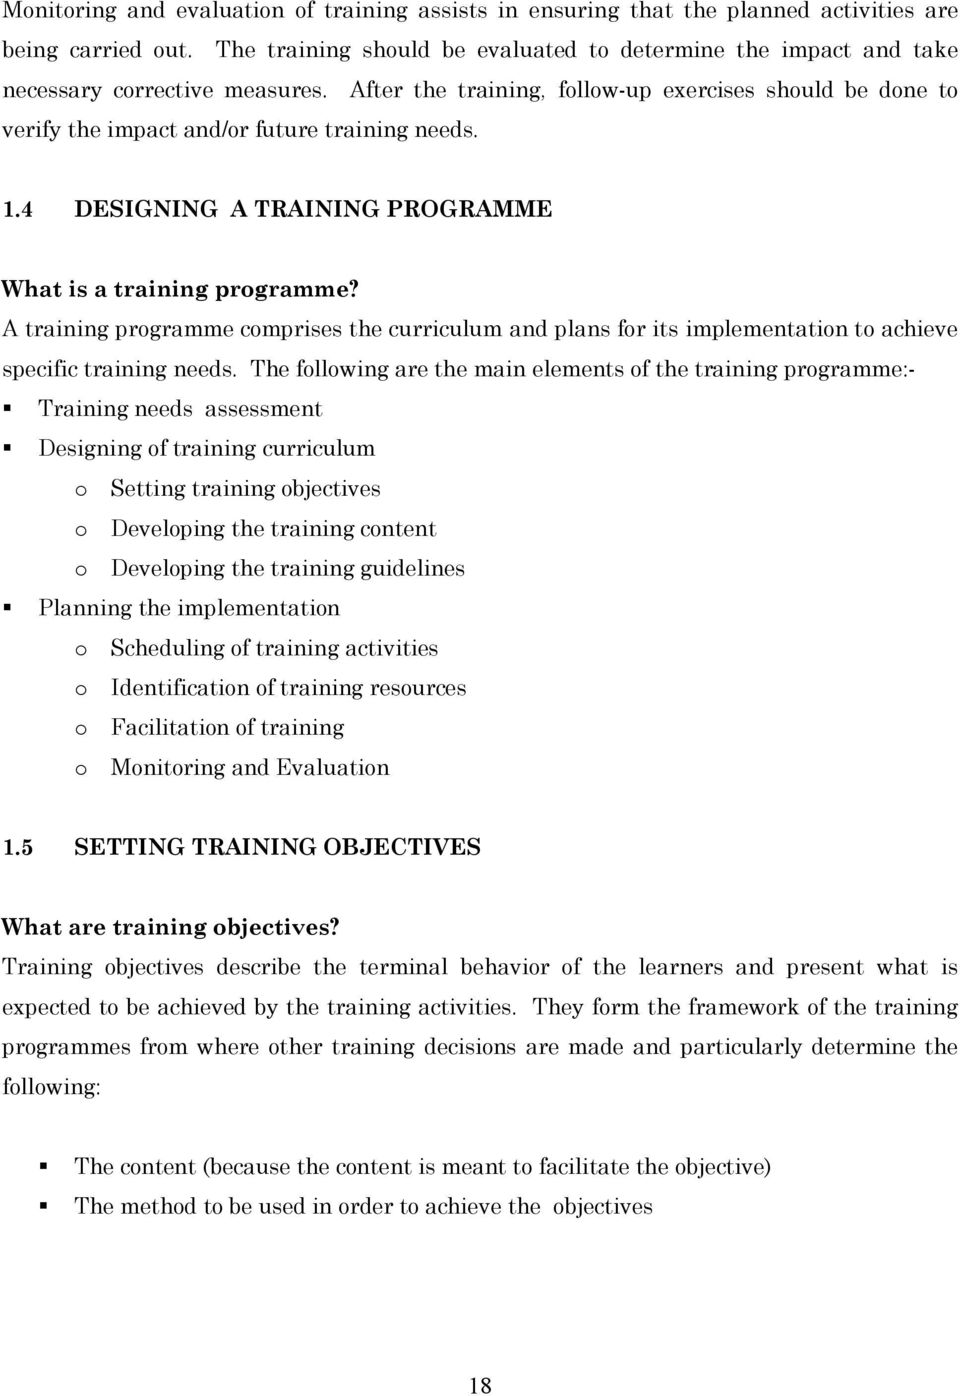 After the training, follow-up exercises should be done to verify the impact and/or future training needs. 1.4 DESIGNING A TRAINING PROGRAMME What is a training programme?